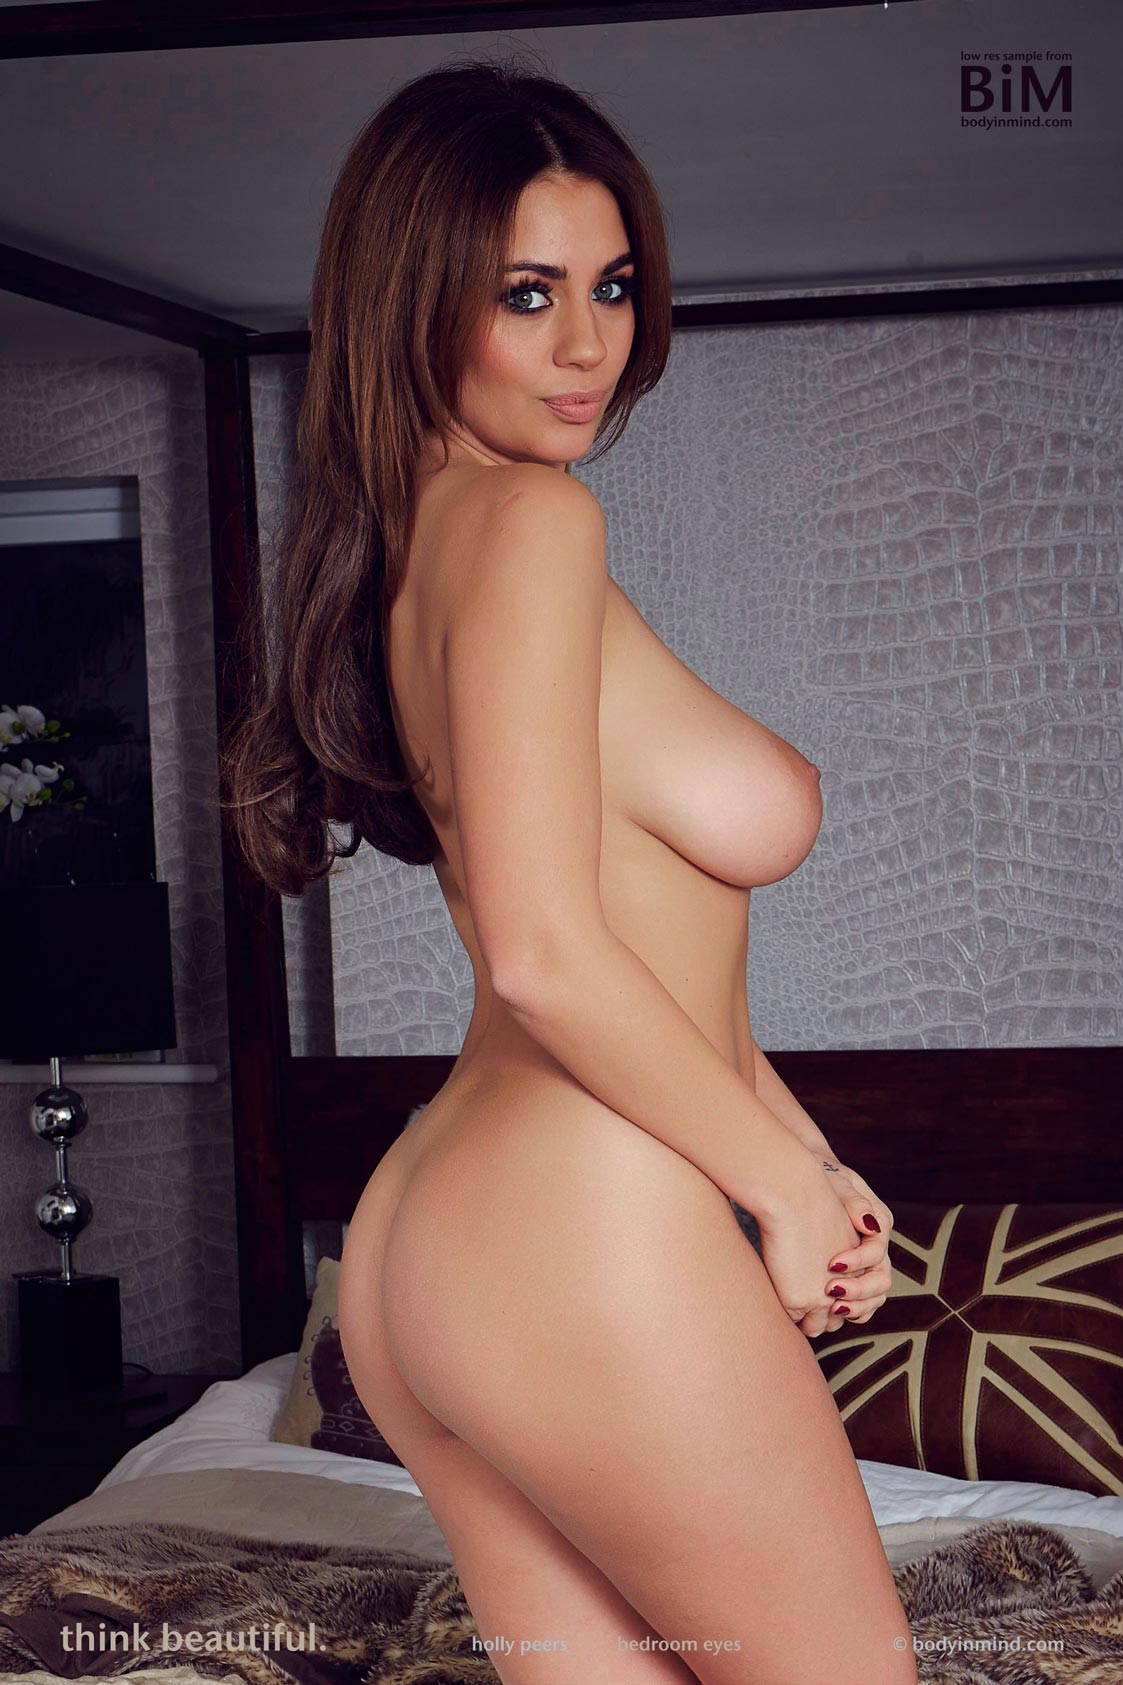 busty-shaved-gorgeous-brunette-babe-holly-peers-with-big-naturals-wearing-lingerie-8.jpg